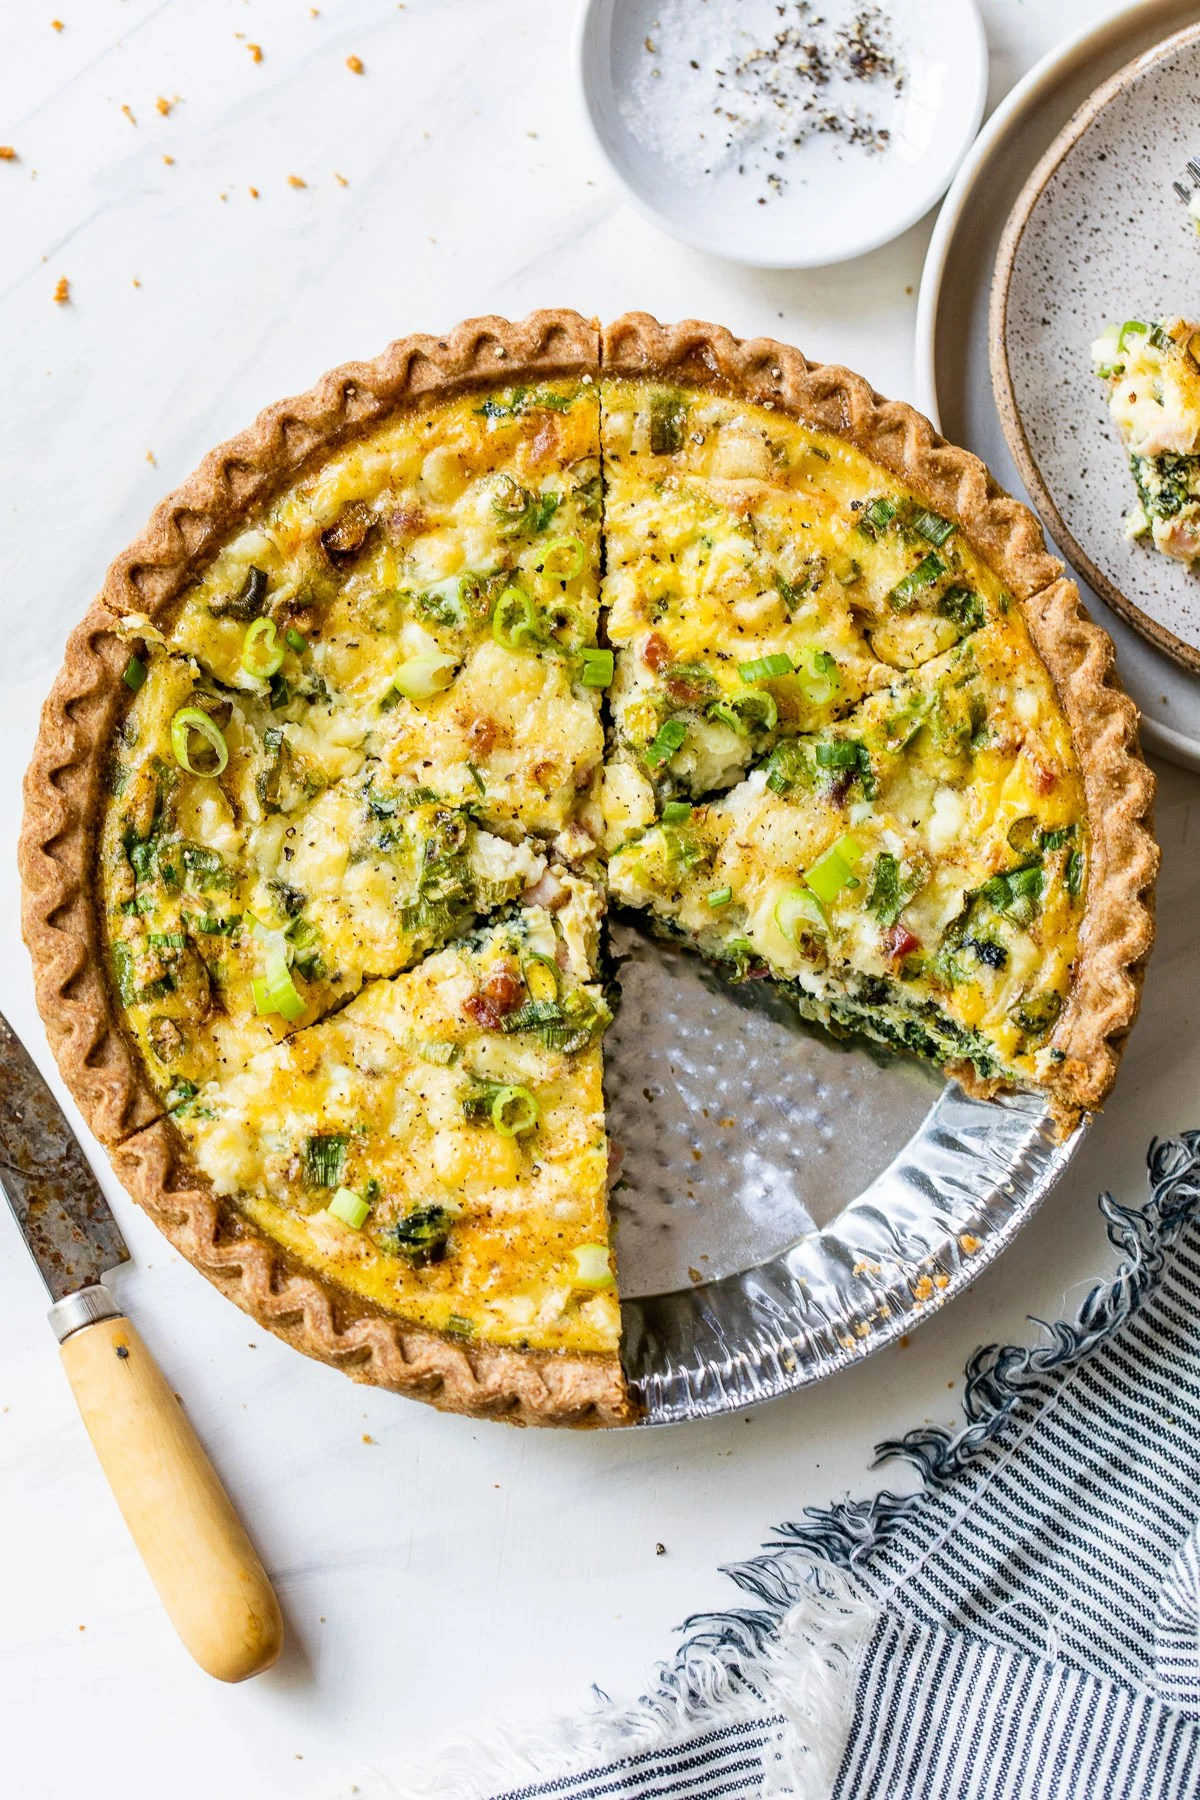 Sunburst Spring Vegetable Quiche with Puff Pastry Crust. An easy, gorgeous quiche with asparagus, carrots and leeks.